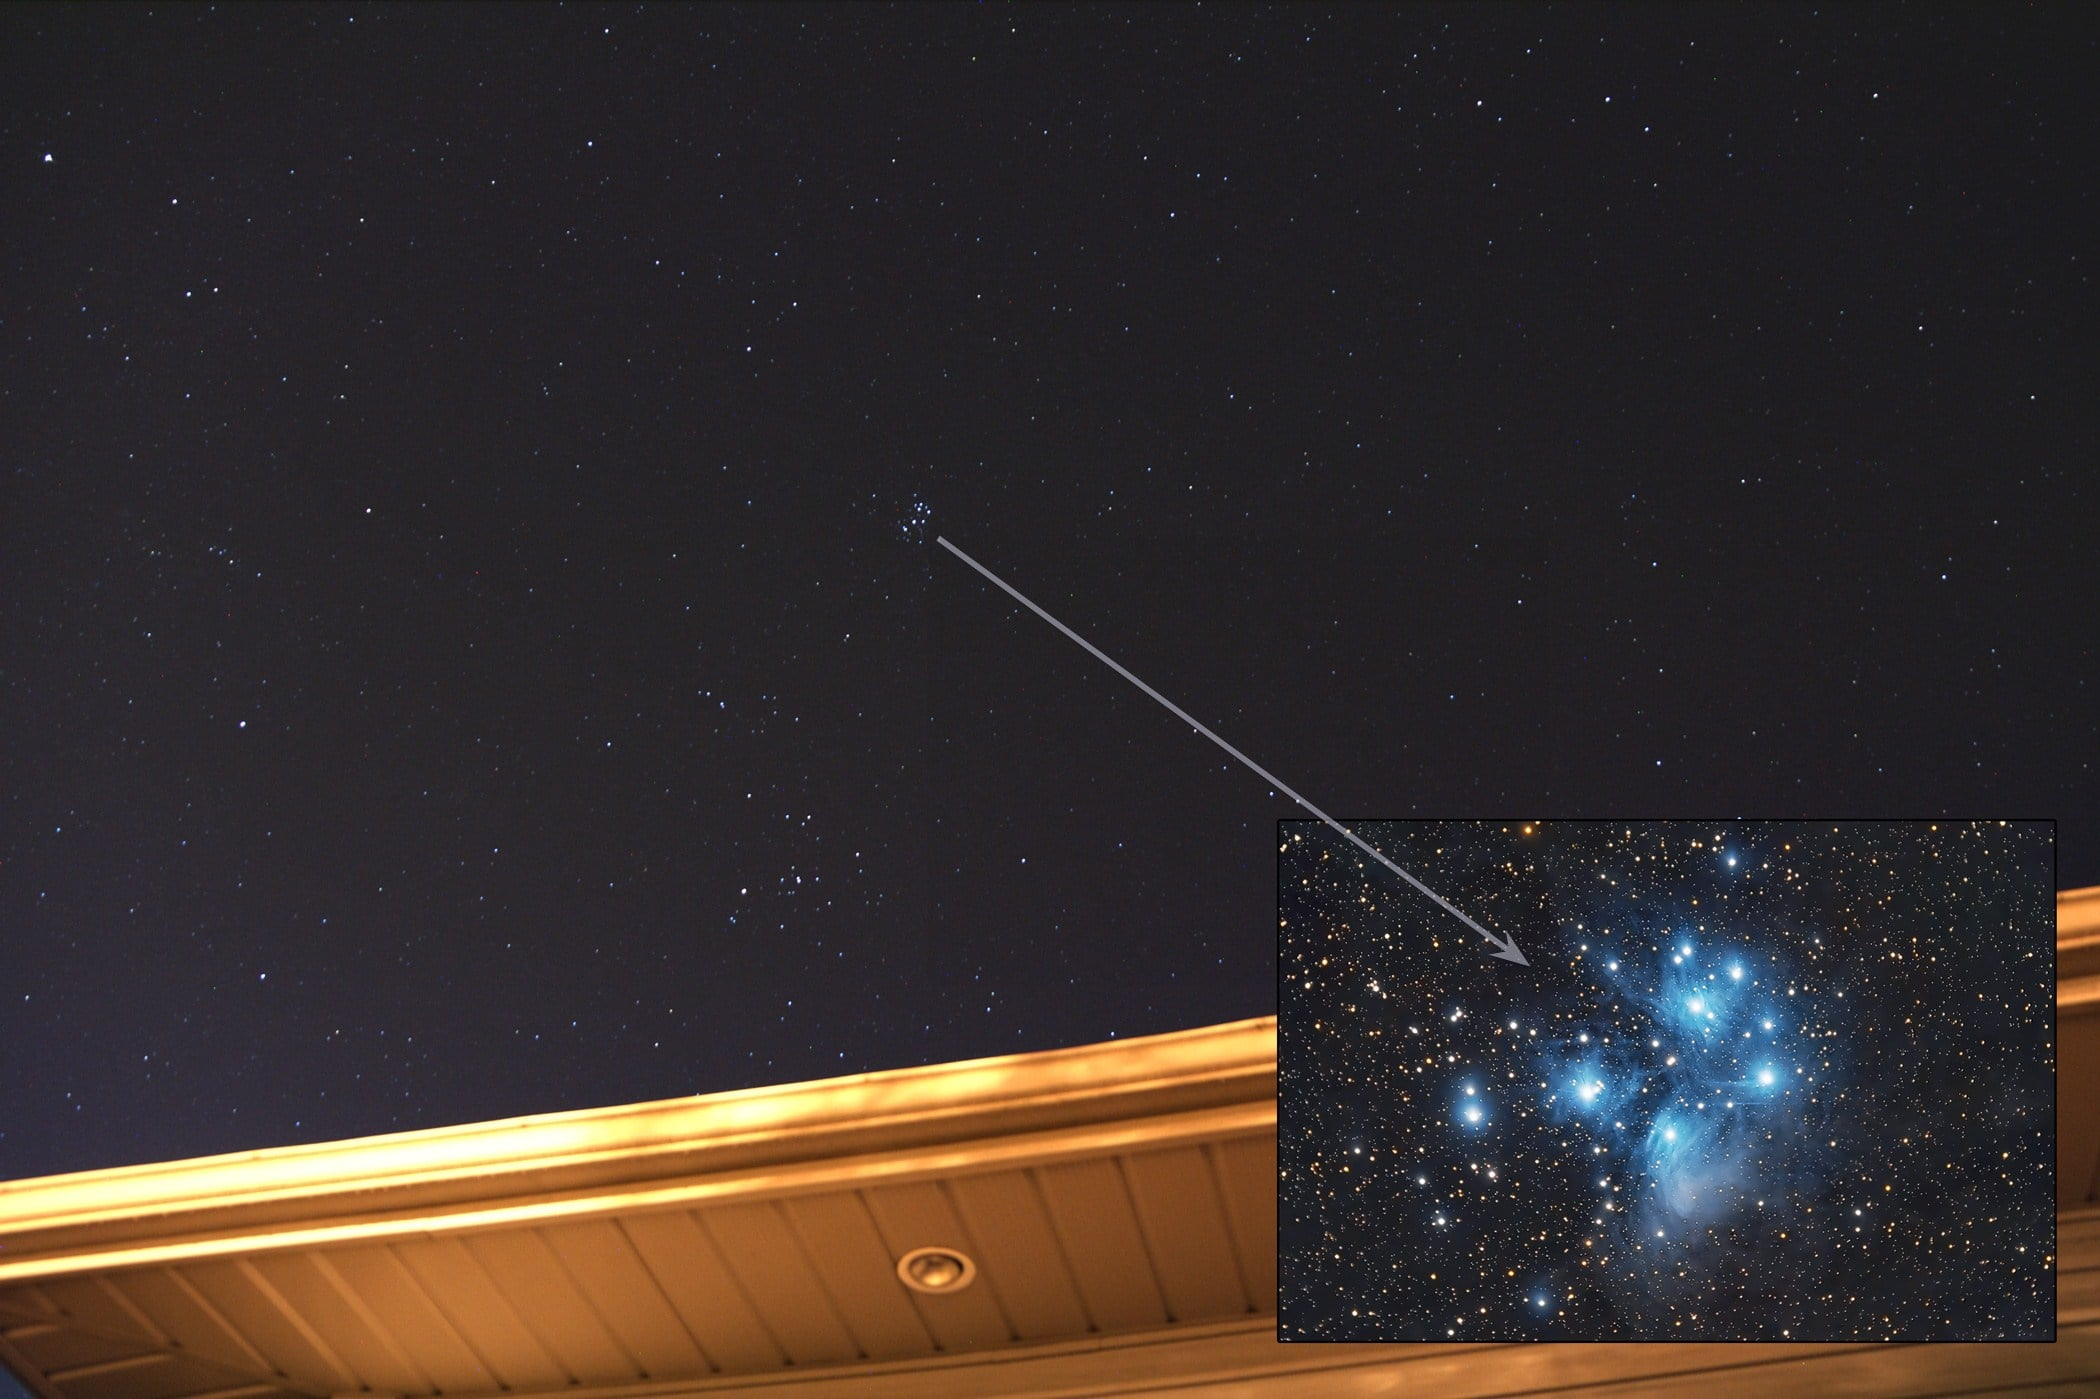 Pleiades star cluster rising high overhead in the early Fall pre-dawn sky of September